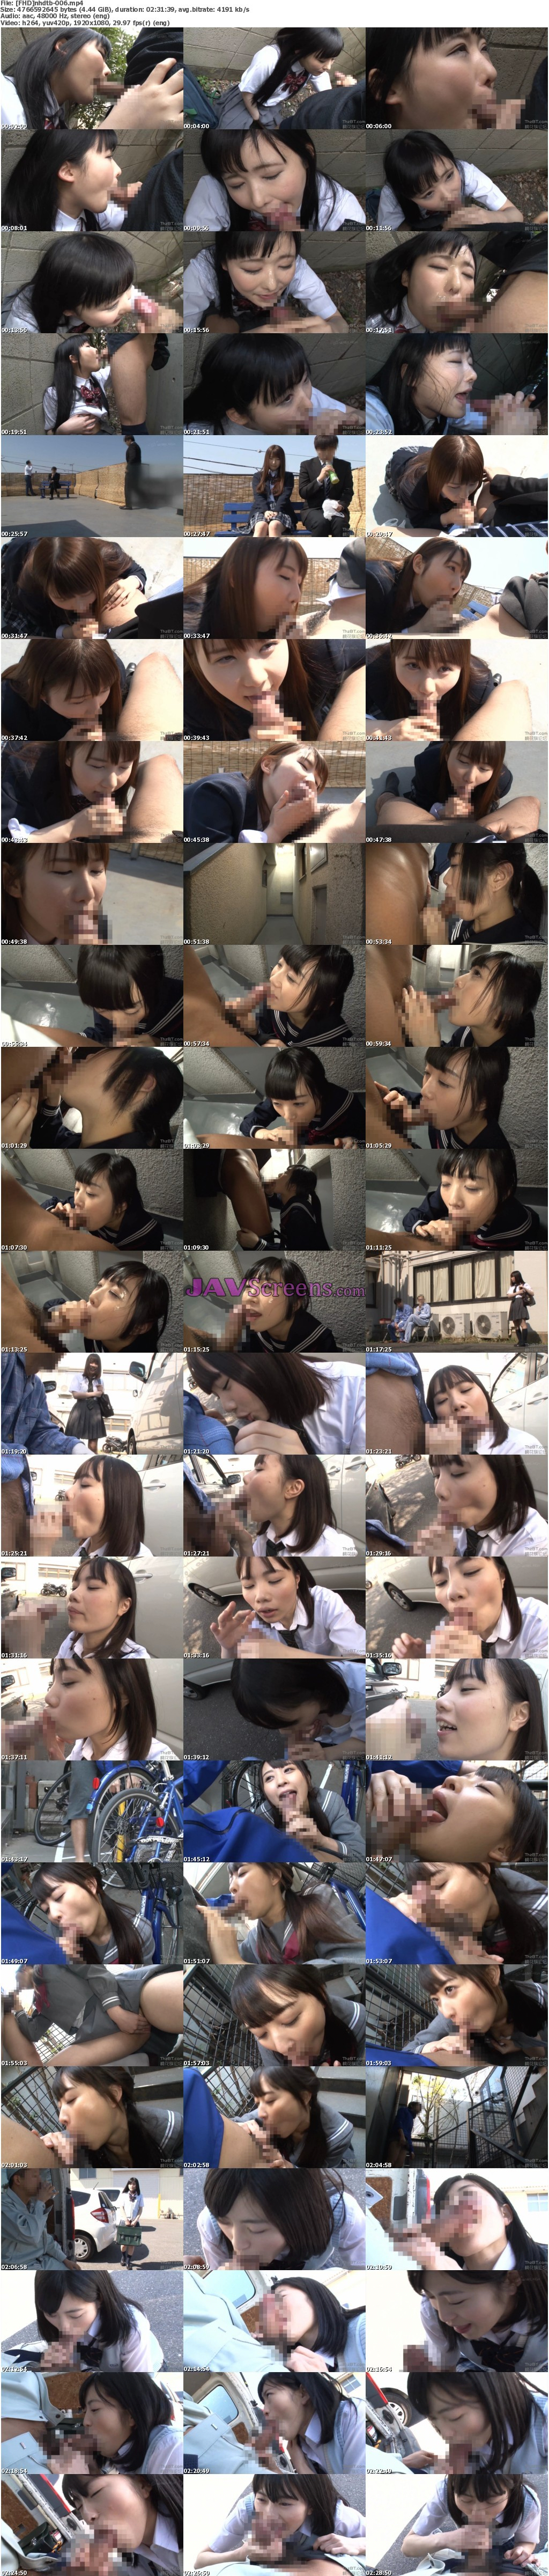 NHDTB-006.jpg - JAV Screenshot